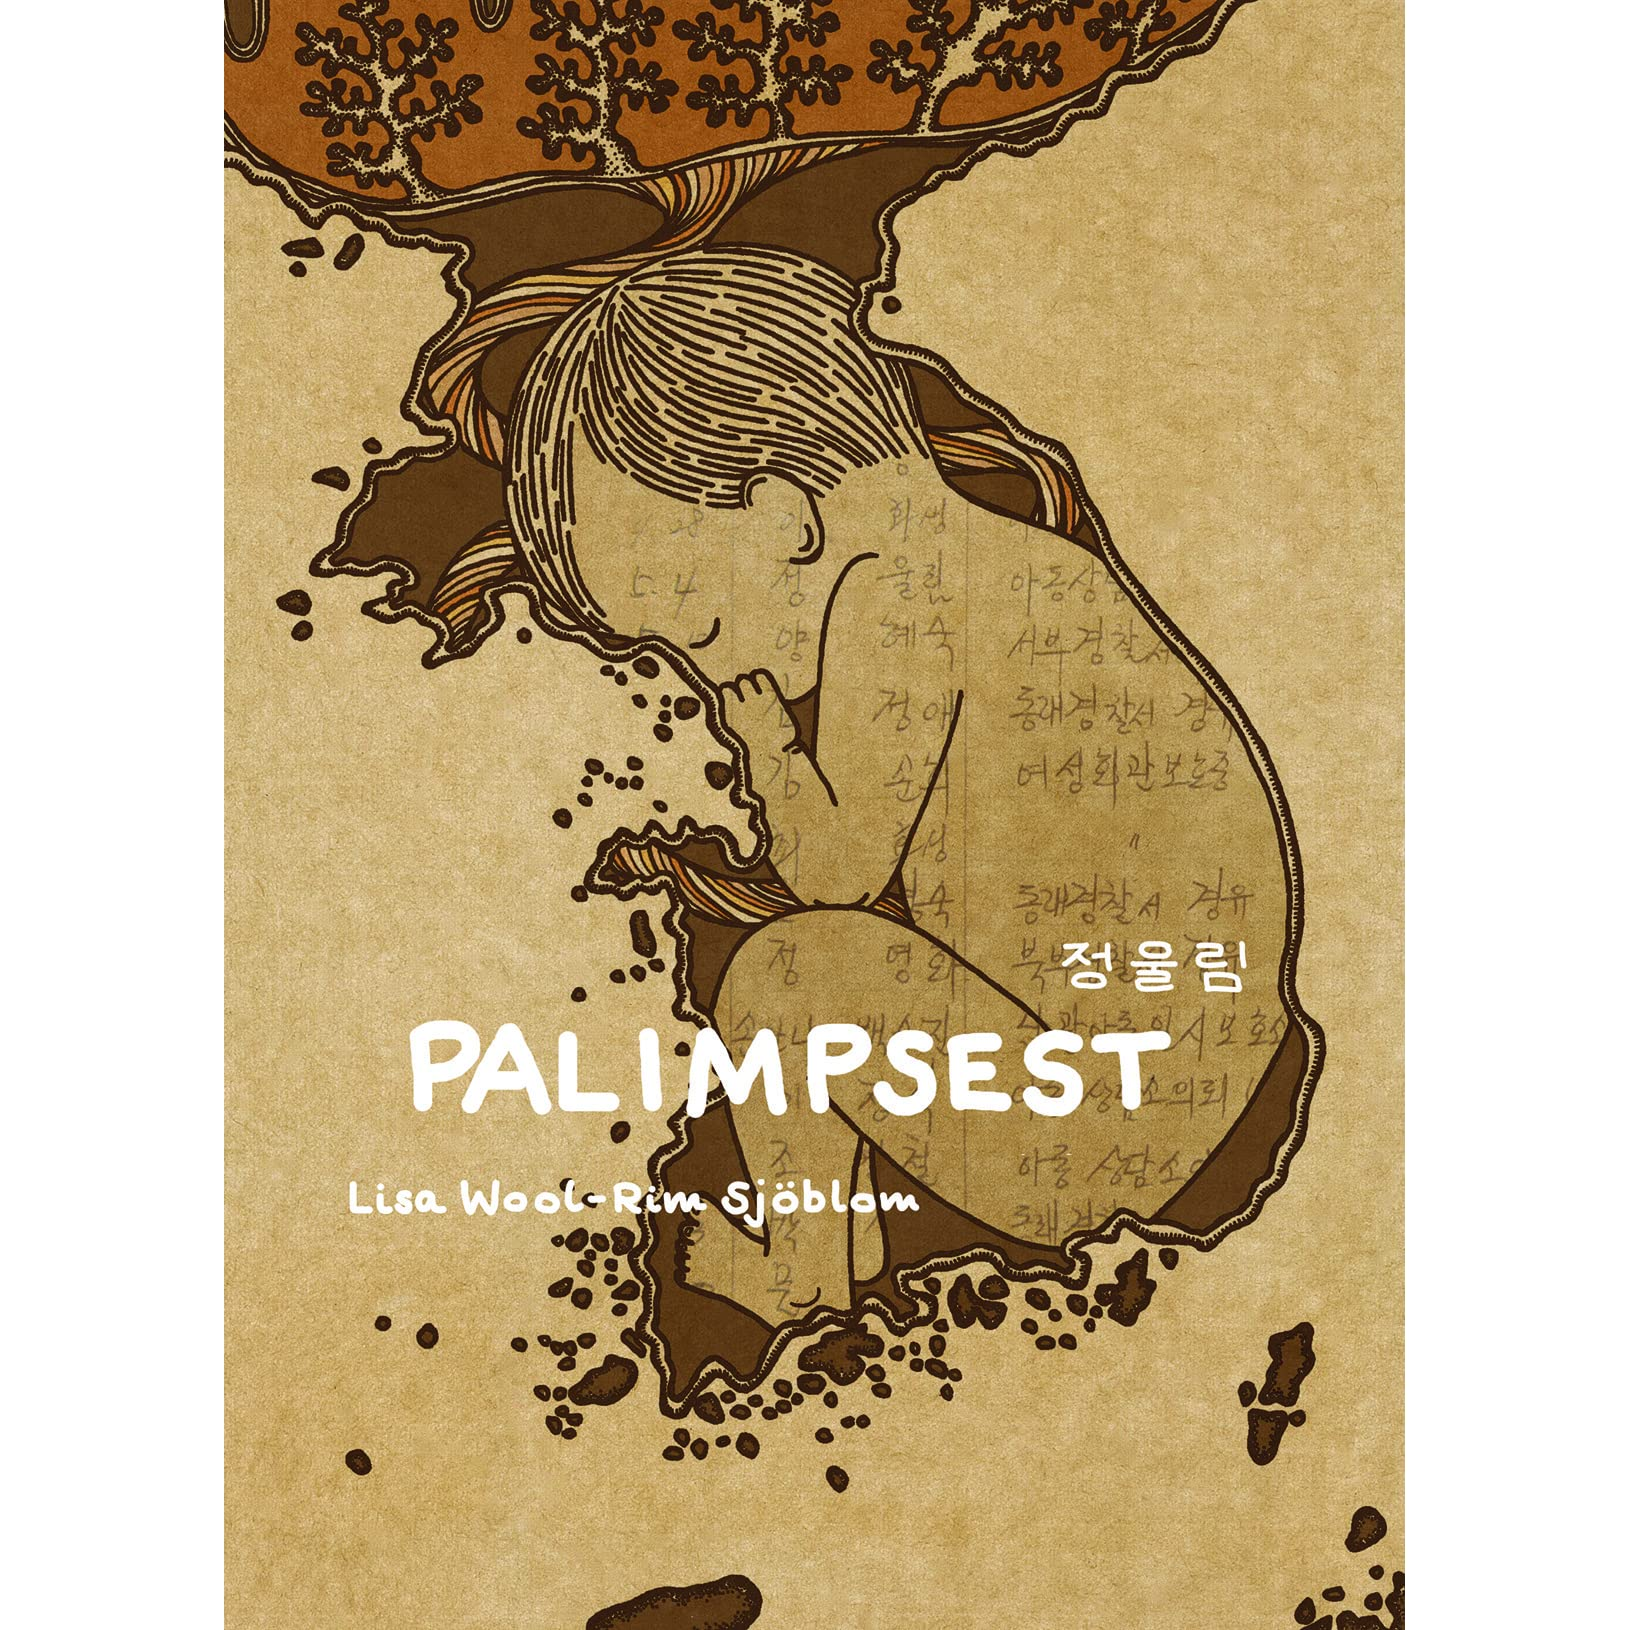 Palimpsest by Lisa Wool-Rim Sjöblom